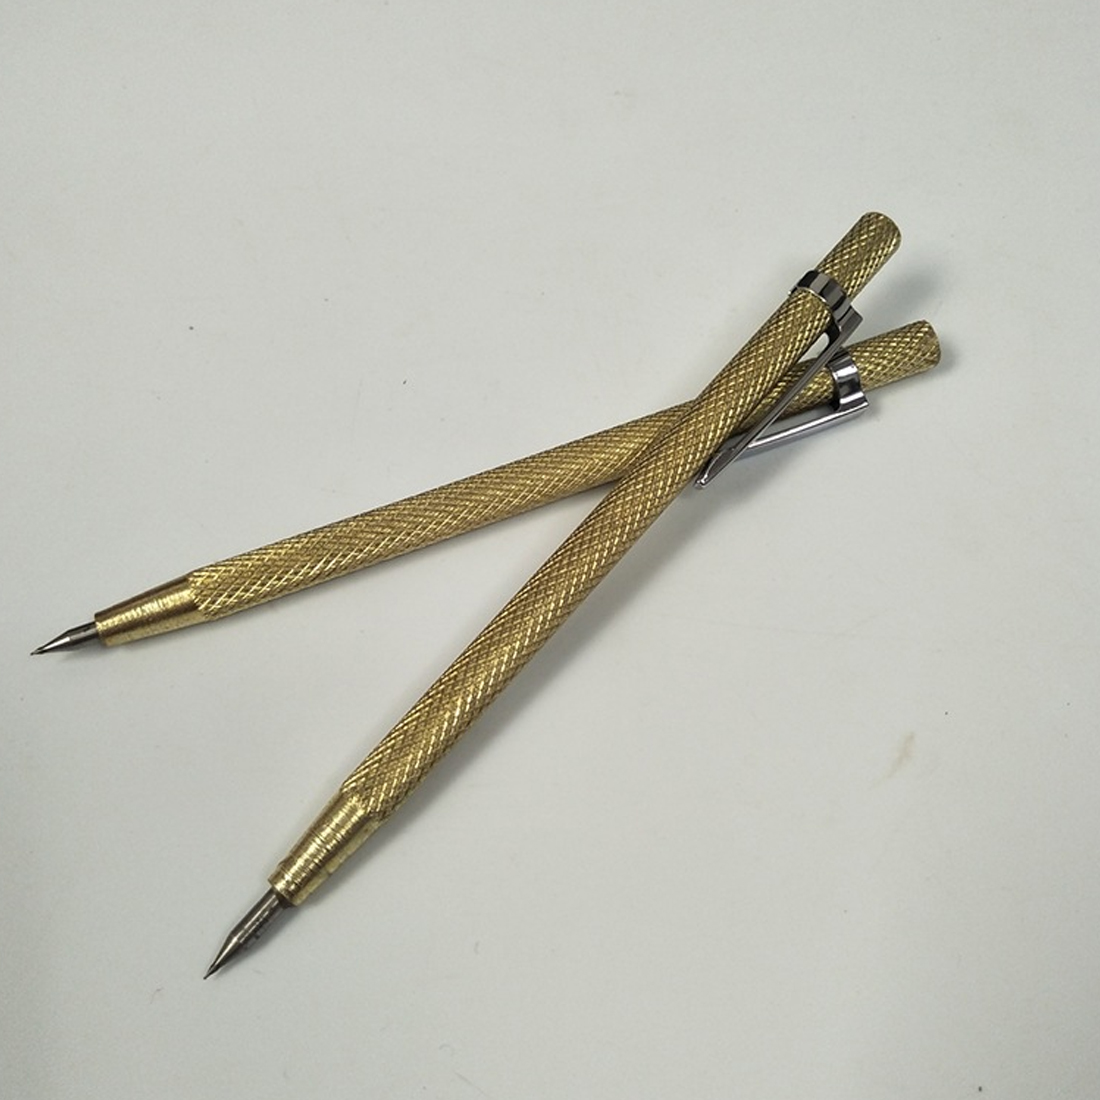 Golden Tungsten Carbide Tip Scriber Etching Pen Carve Jewelry Metal Tool Shell Lettering